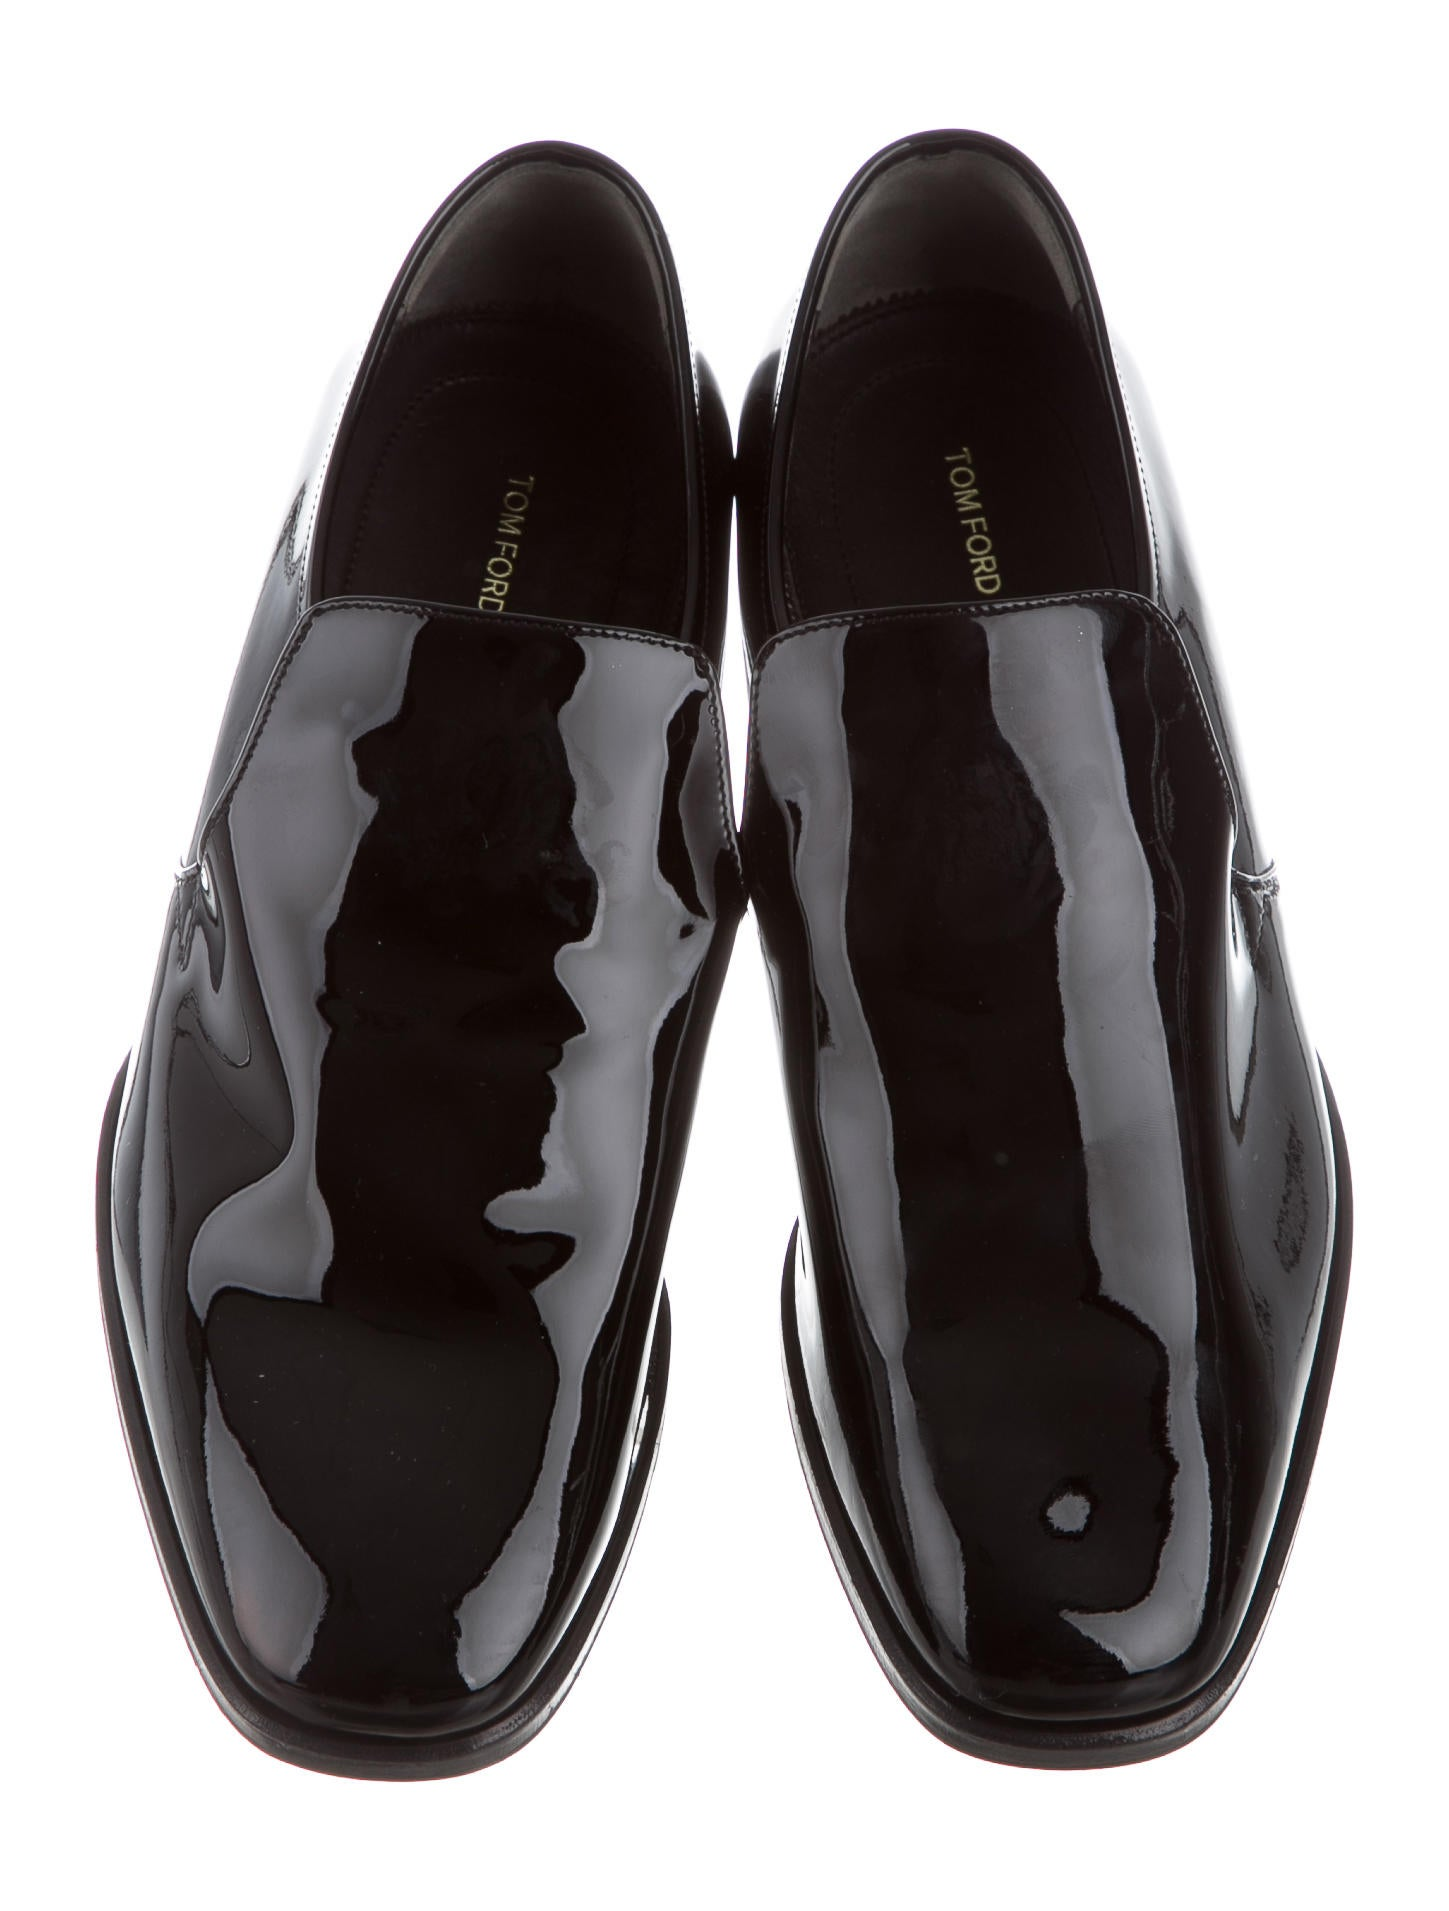 tom ford patent leather square toe loafers shoes. Black Bedroom Furniture Sets. Home Design Ideas